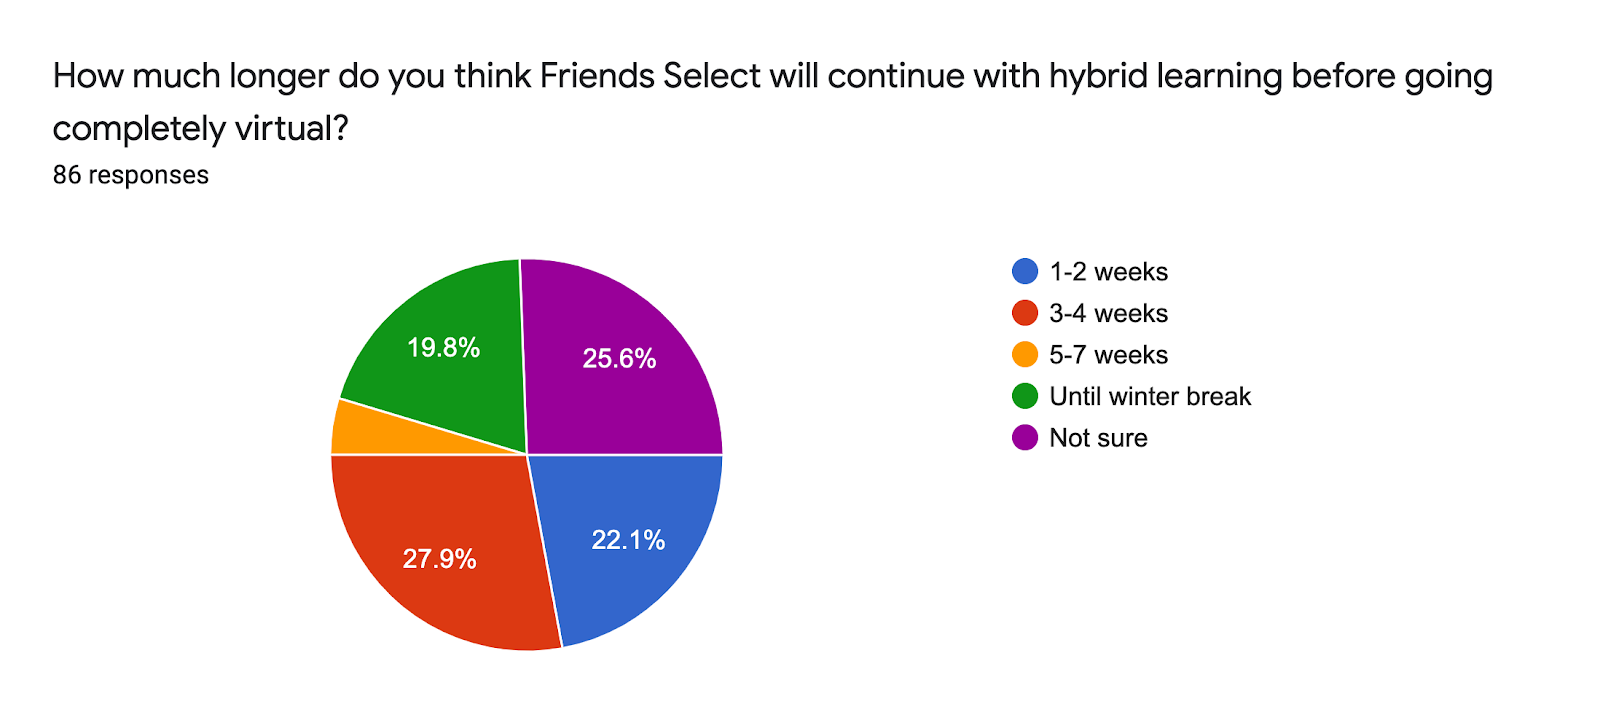 Forms response chart. Question title: How much longer do you think Friends Select will continue with hybrid learning before going completely virtual?. Number of responses: 86 responses.